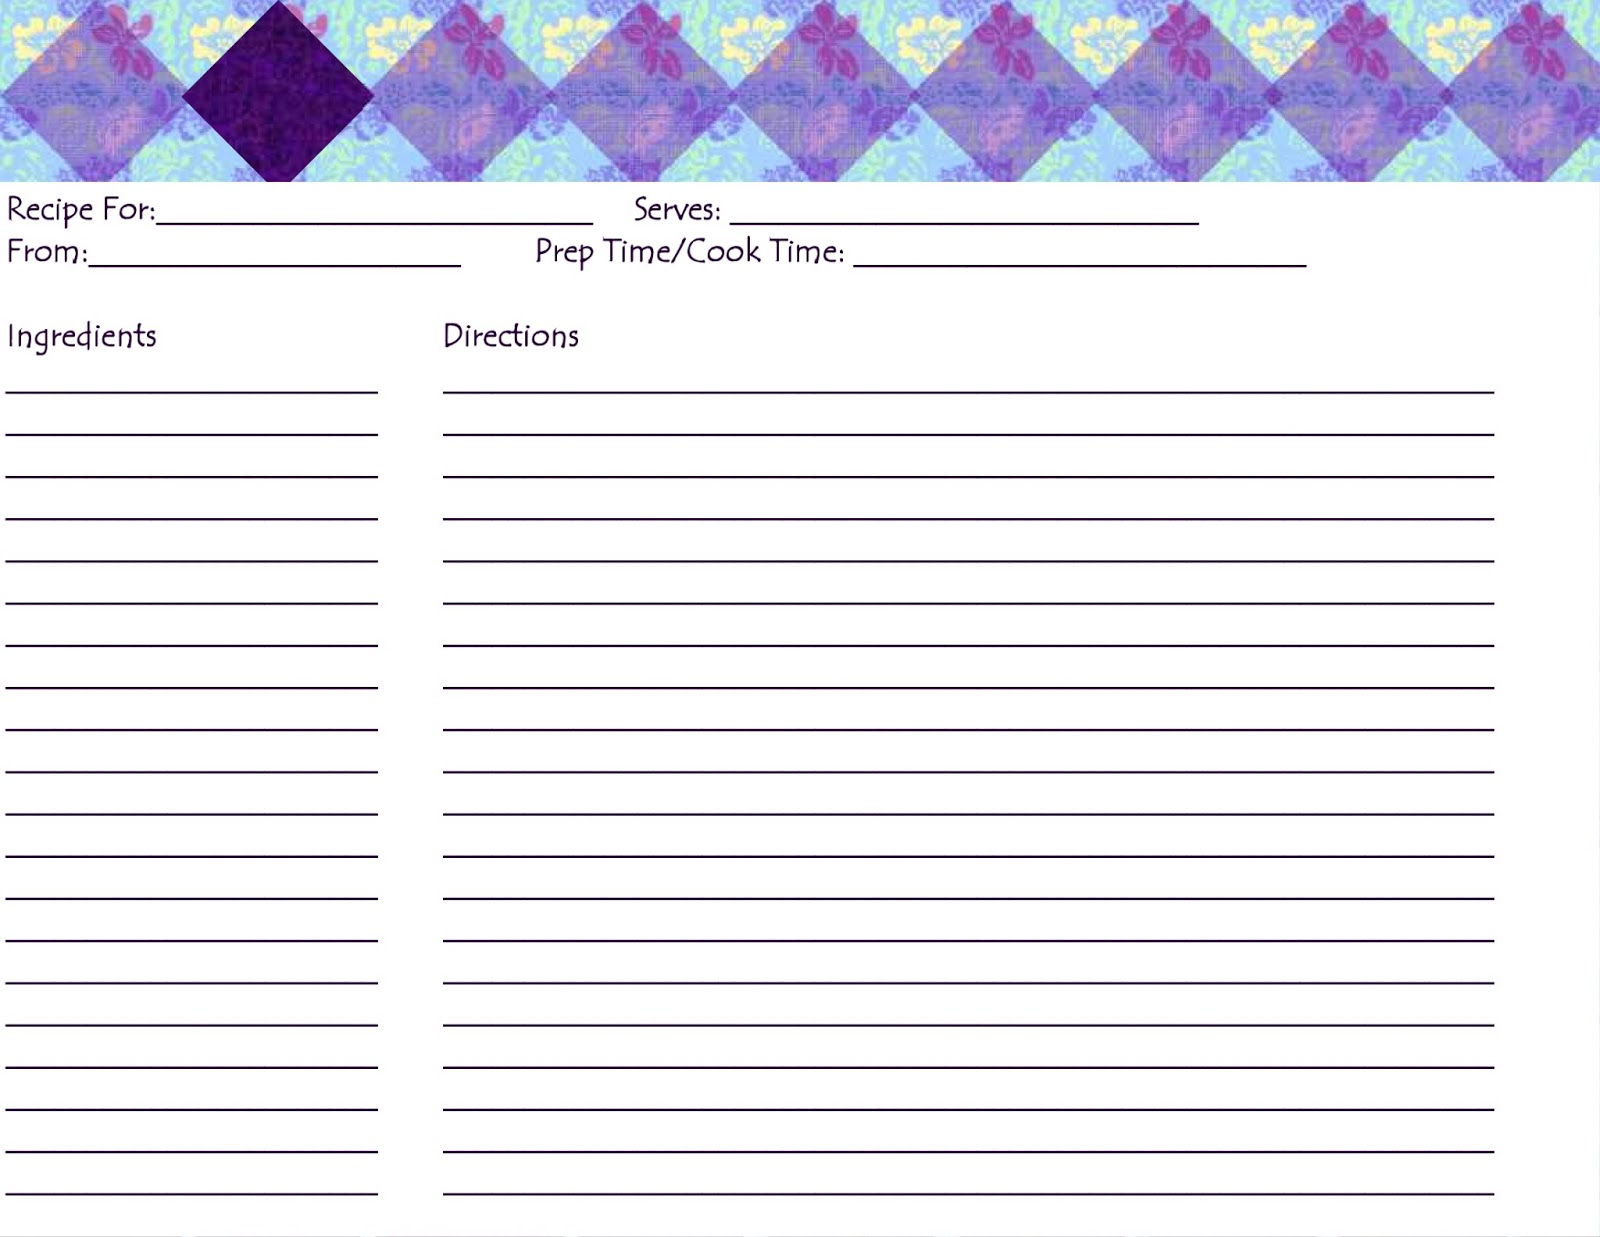 It is a picture of Transformative Blank Recipe Card